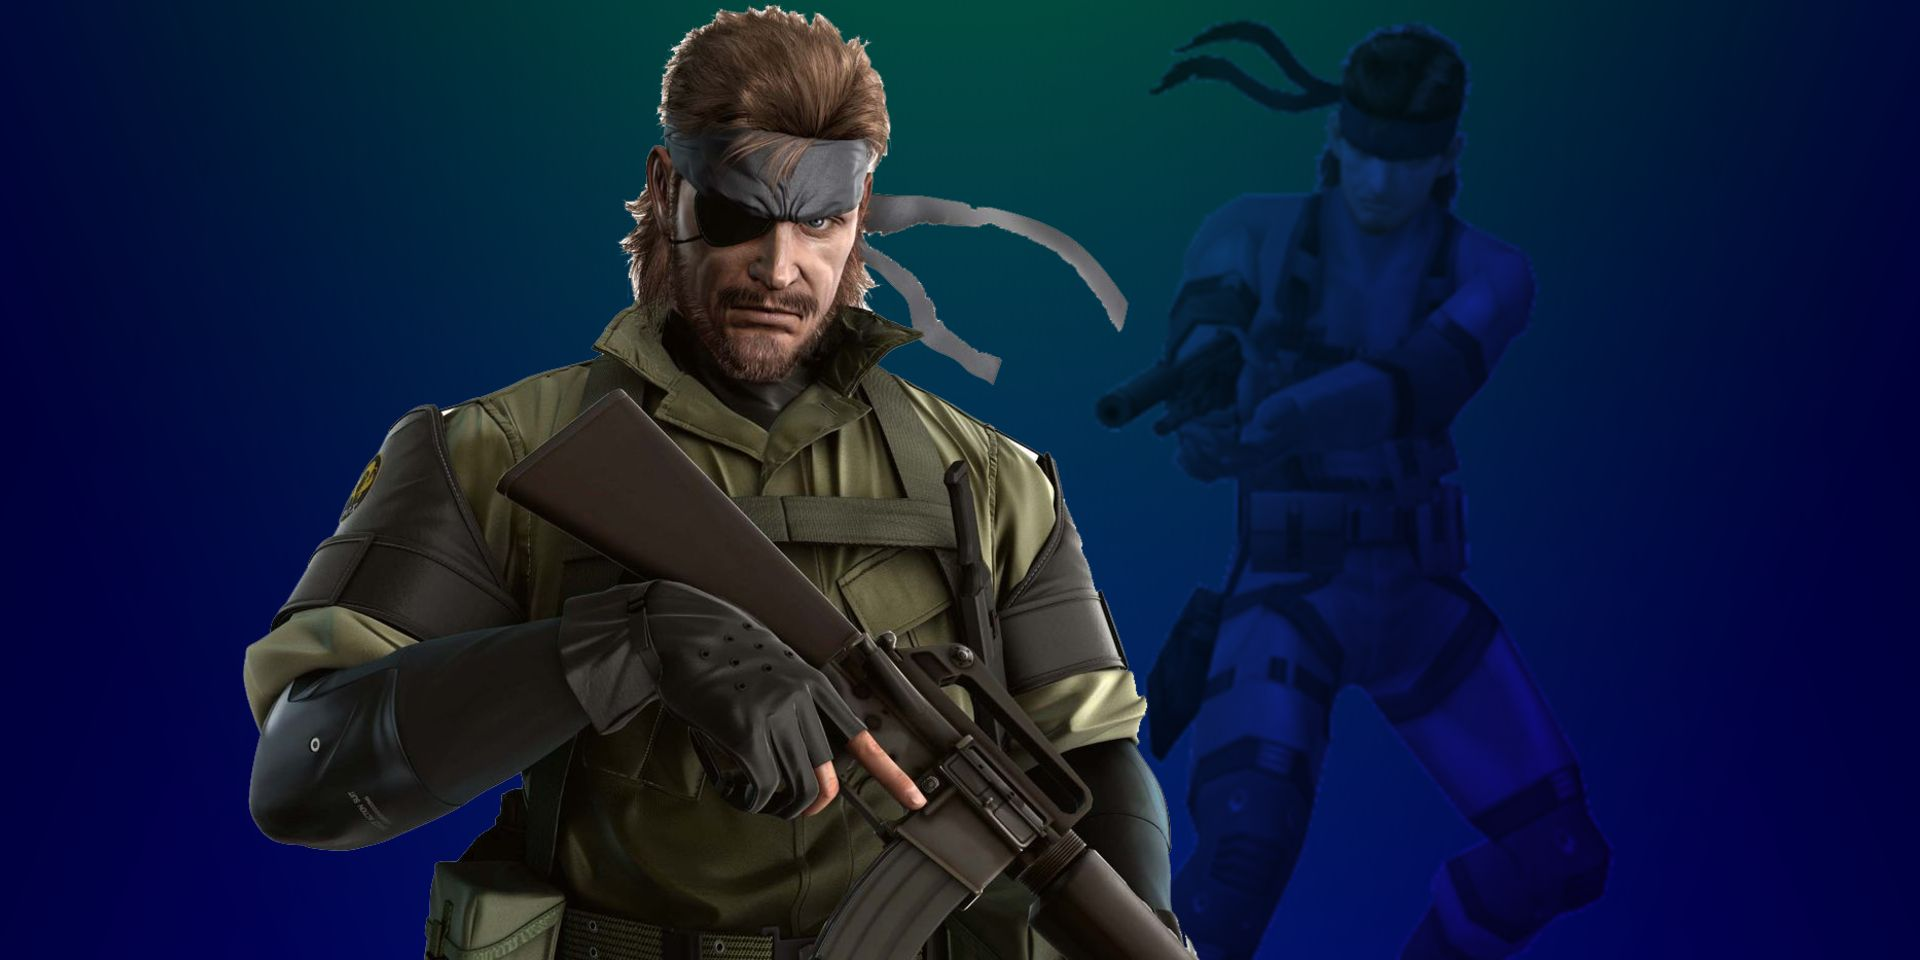 If a Metal Gear Solid movie was being made, who would be a